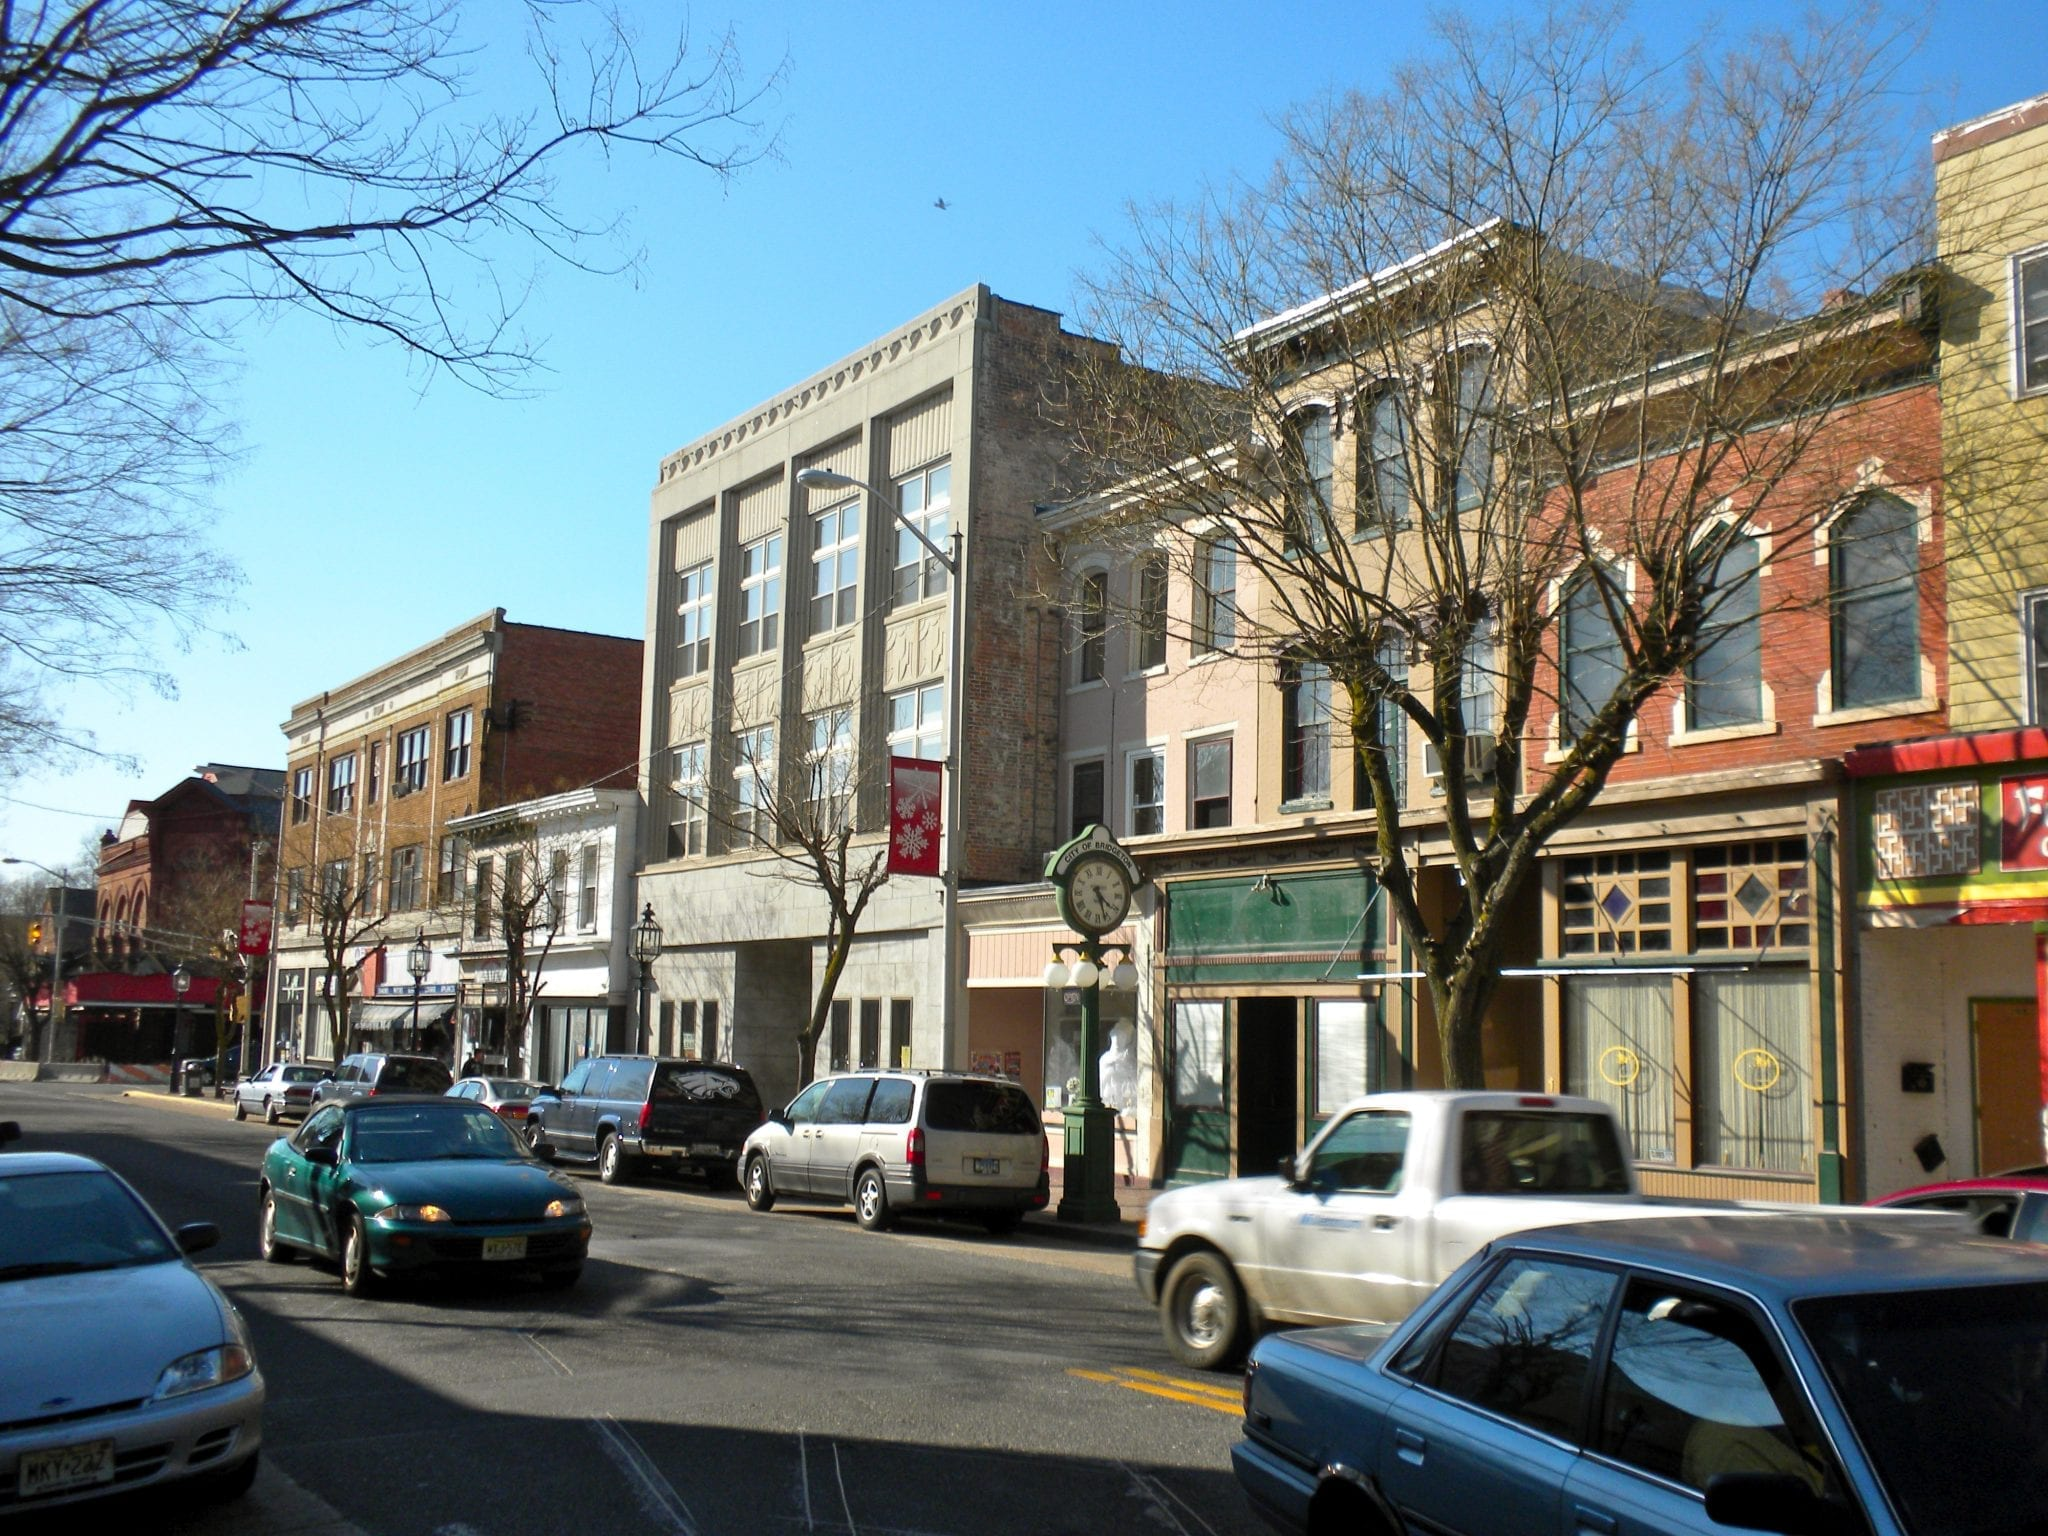 Image of Downtown Bridgeton, NJ